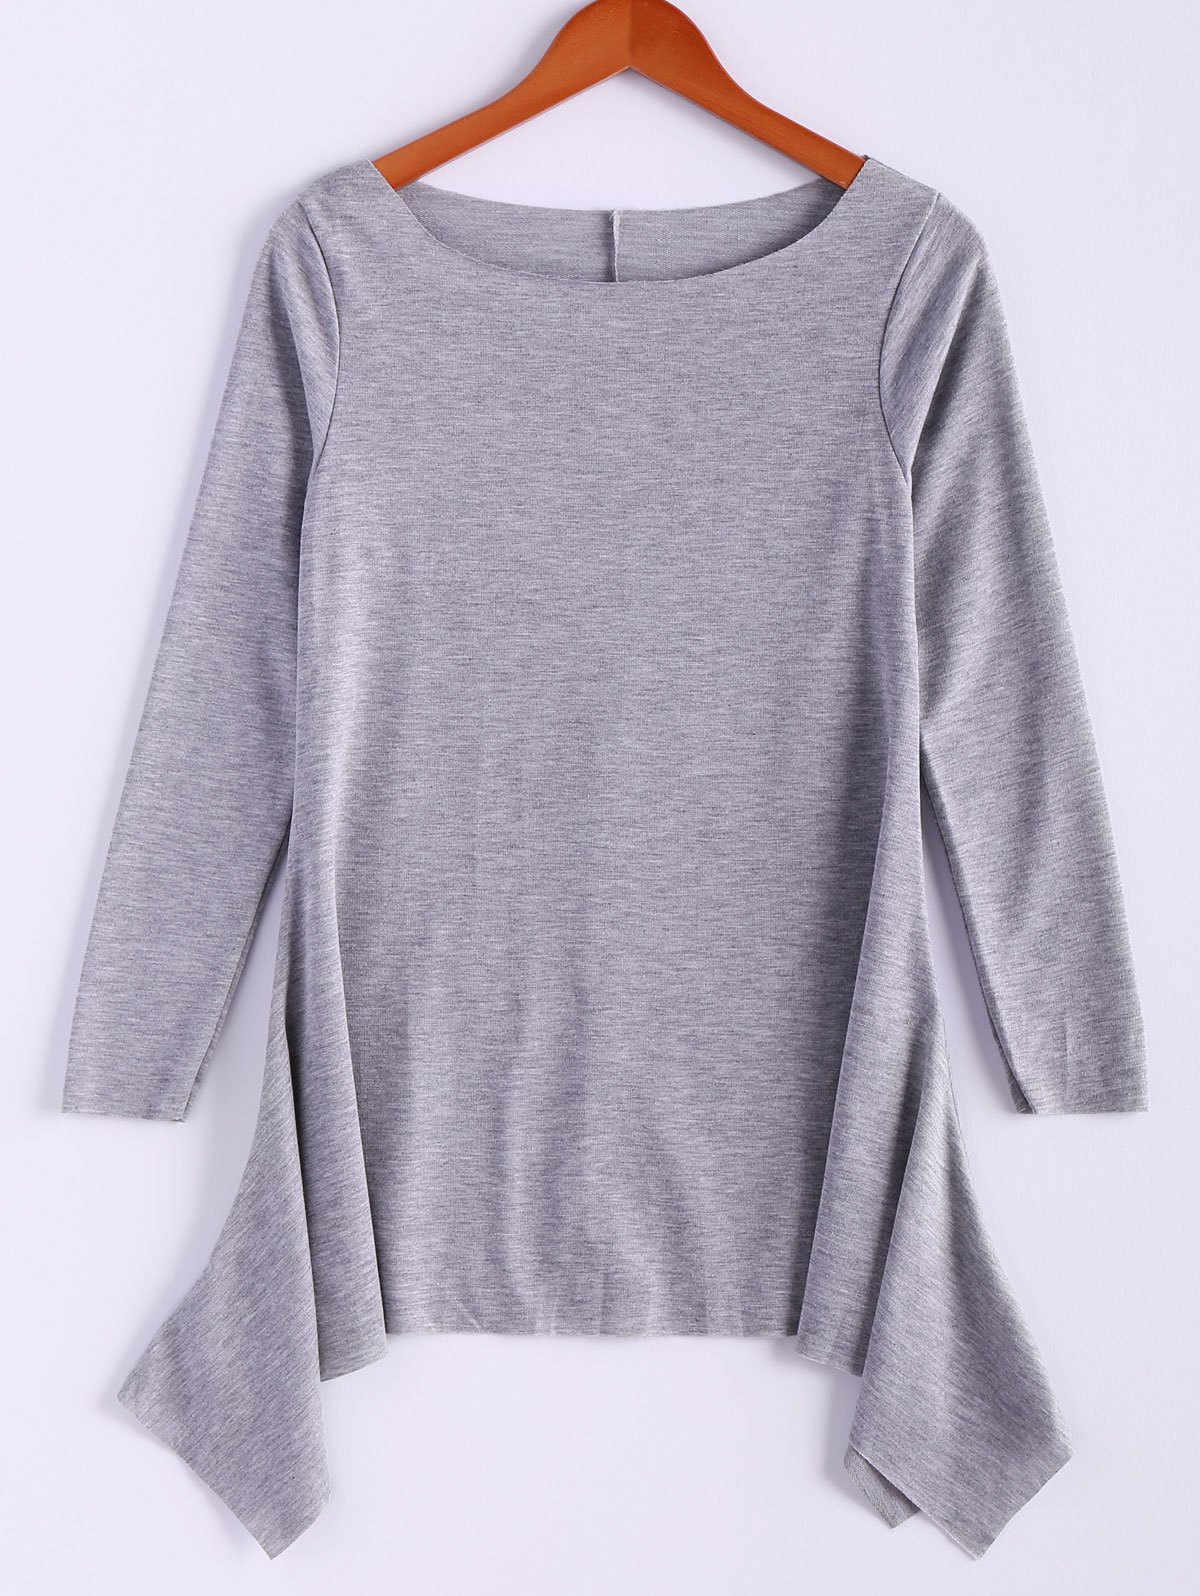 Casual Skew Collar Long Sleeve T-Shirt For Women - GRAY S